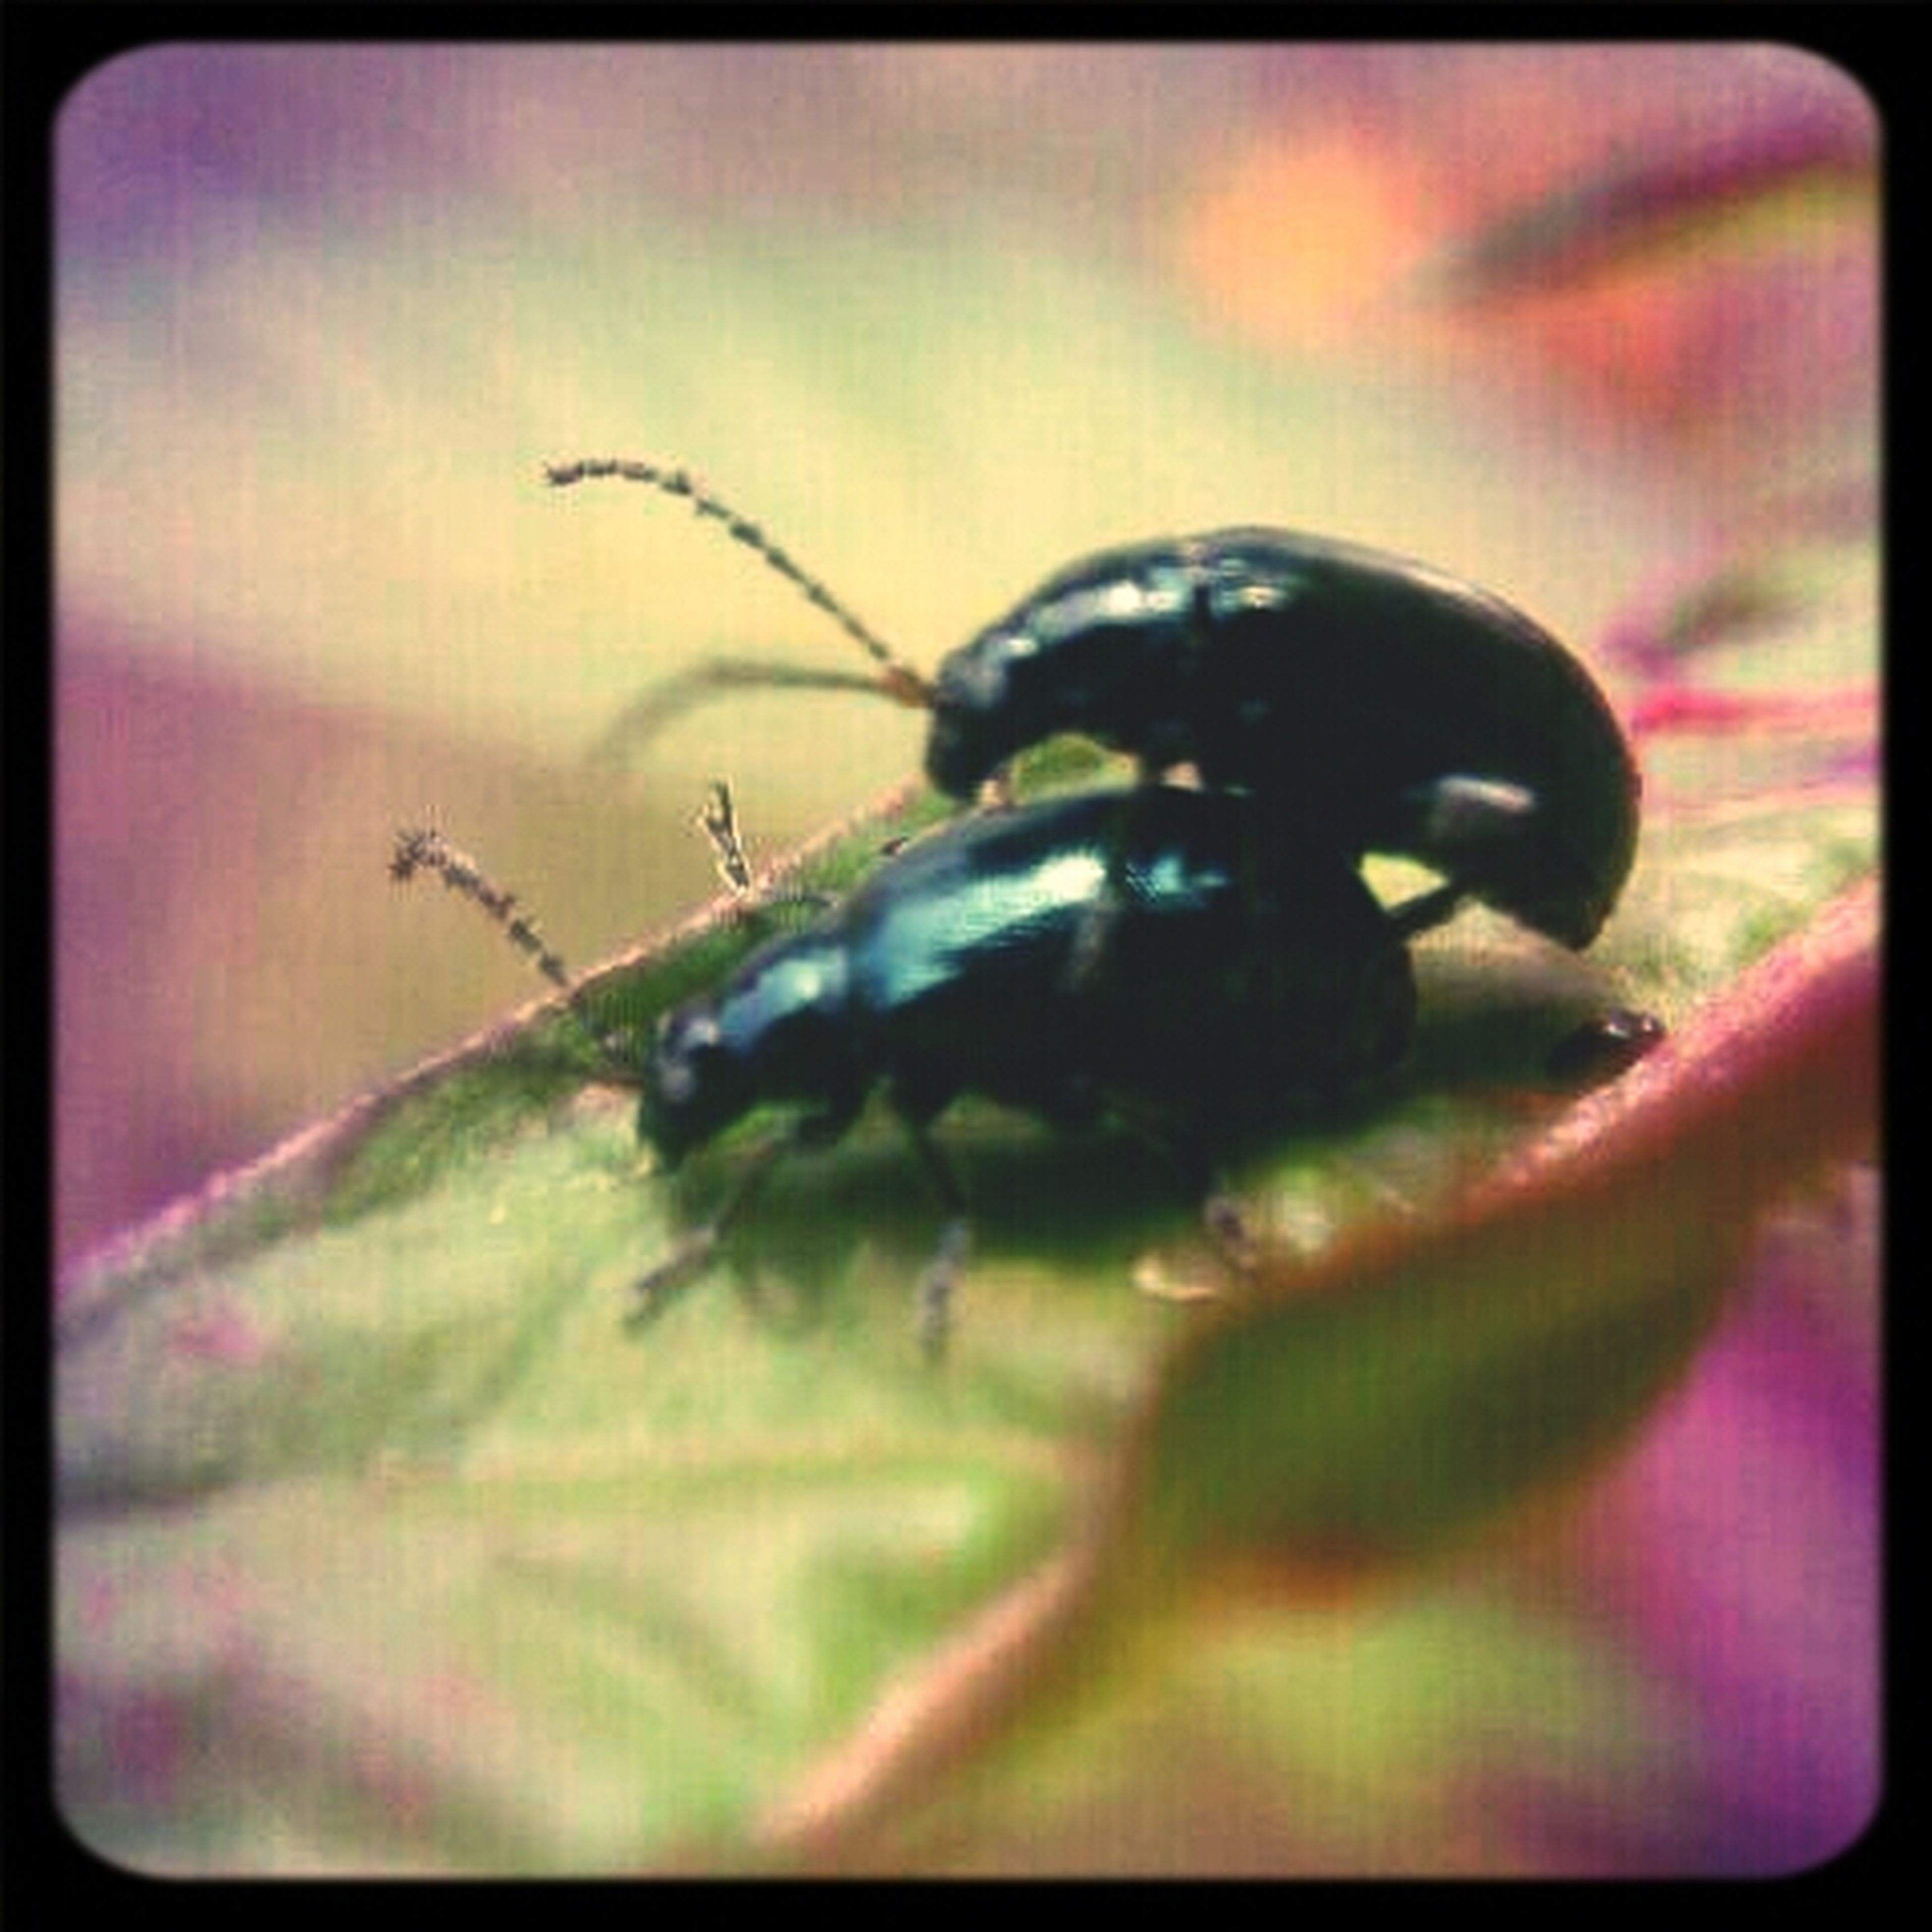 #macrophotography #bug #bugs #CapturedMoment